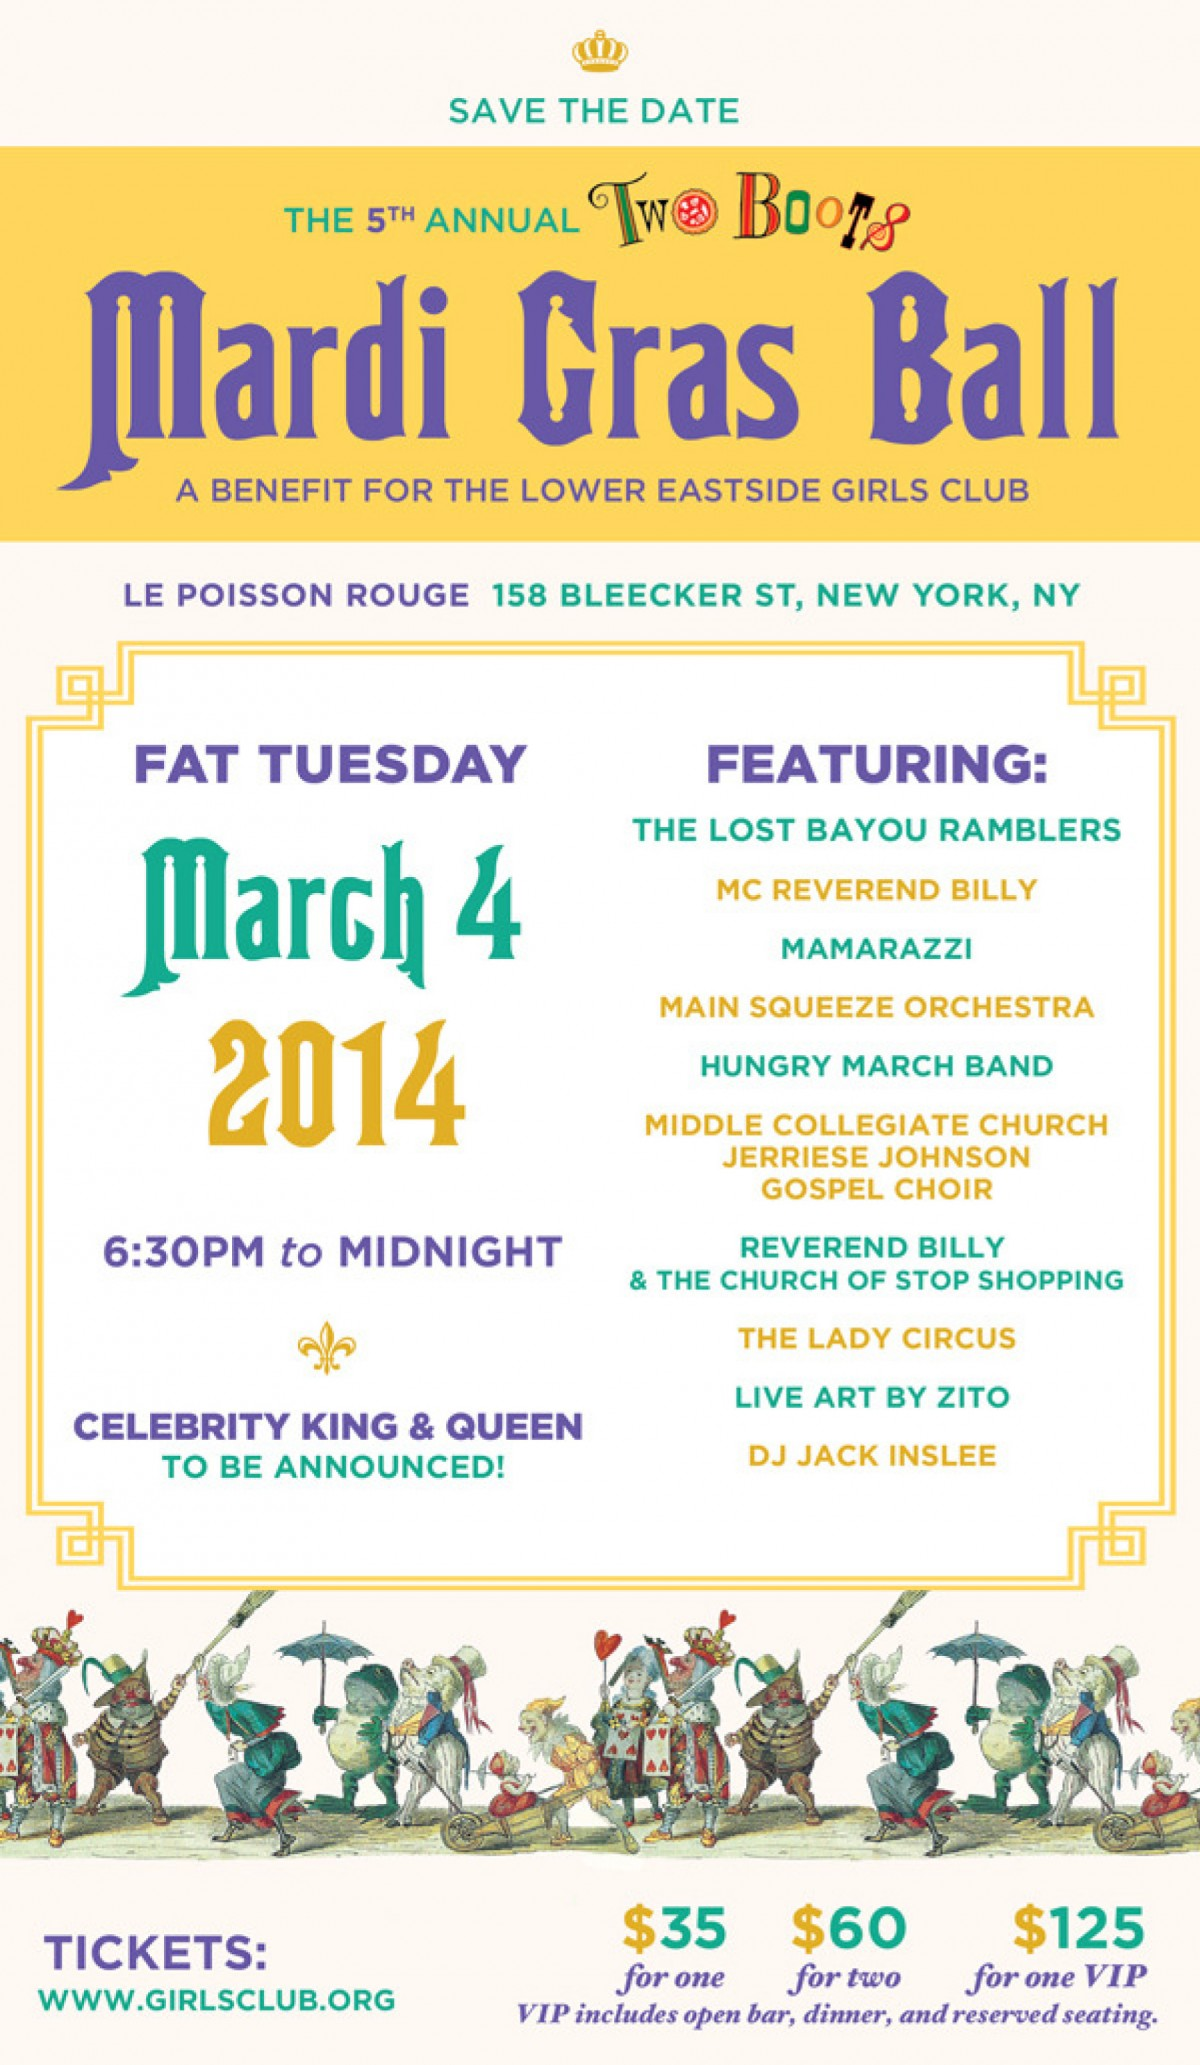 Microsoft Word - two boots mardi gras flyer 2014.docx